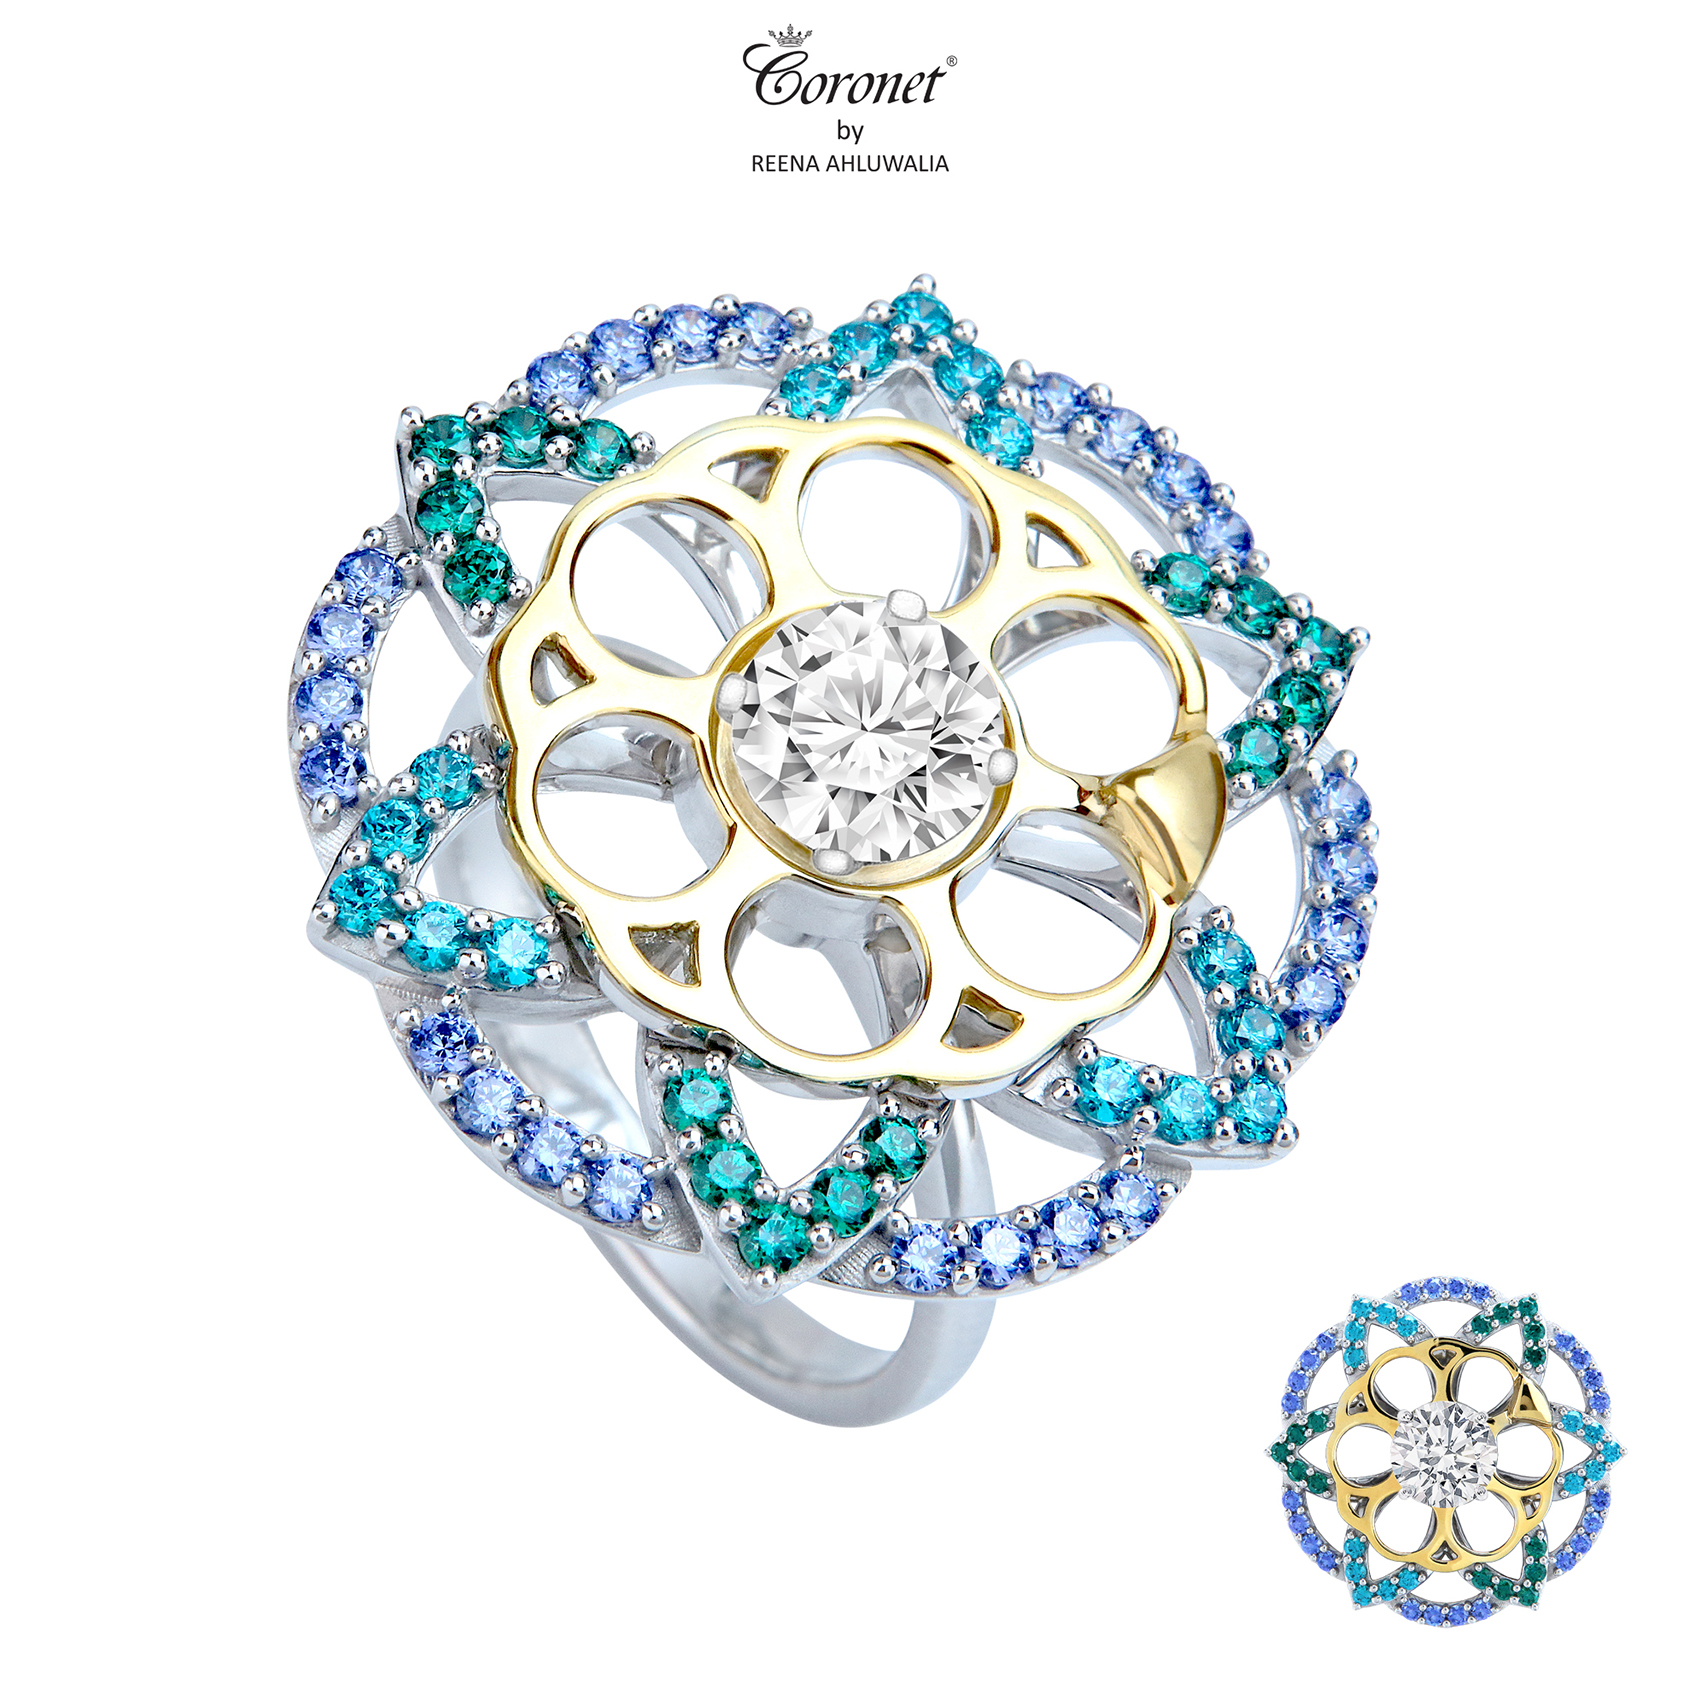 4_Coronet By Reena Ahluwalia_Silver_Swarovski_Soul Carousel Collection_Ring.jpg